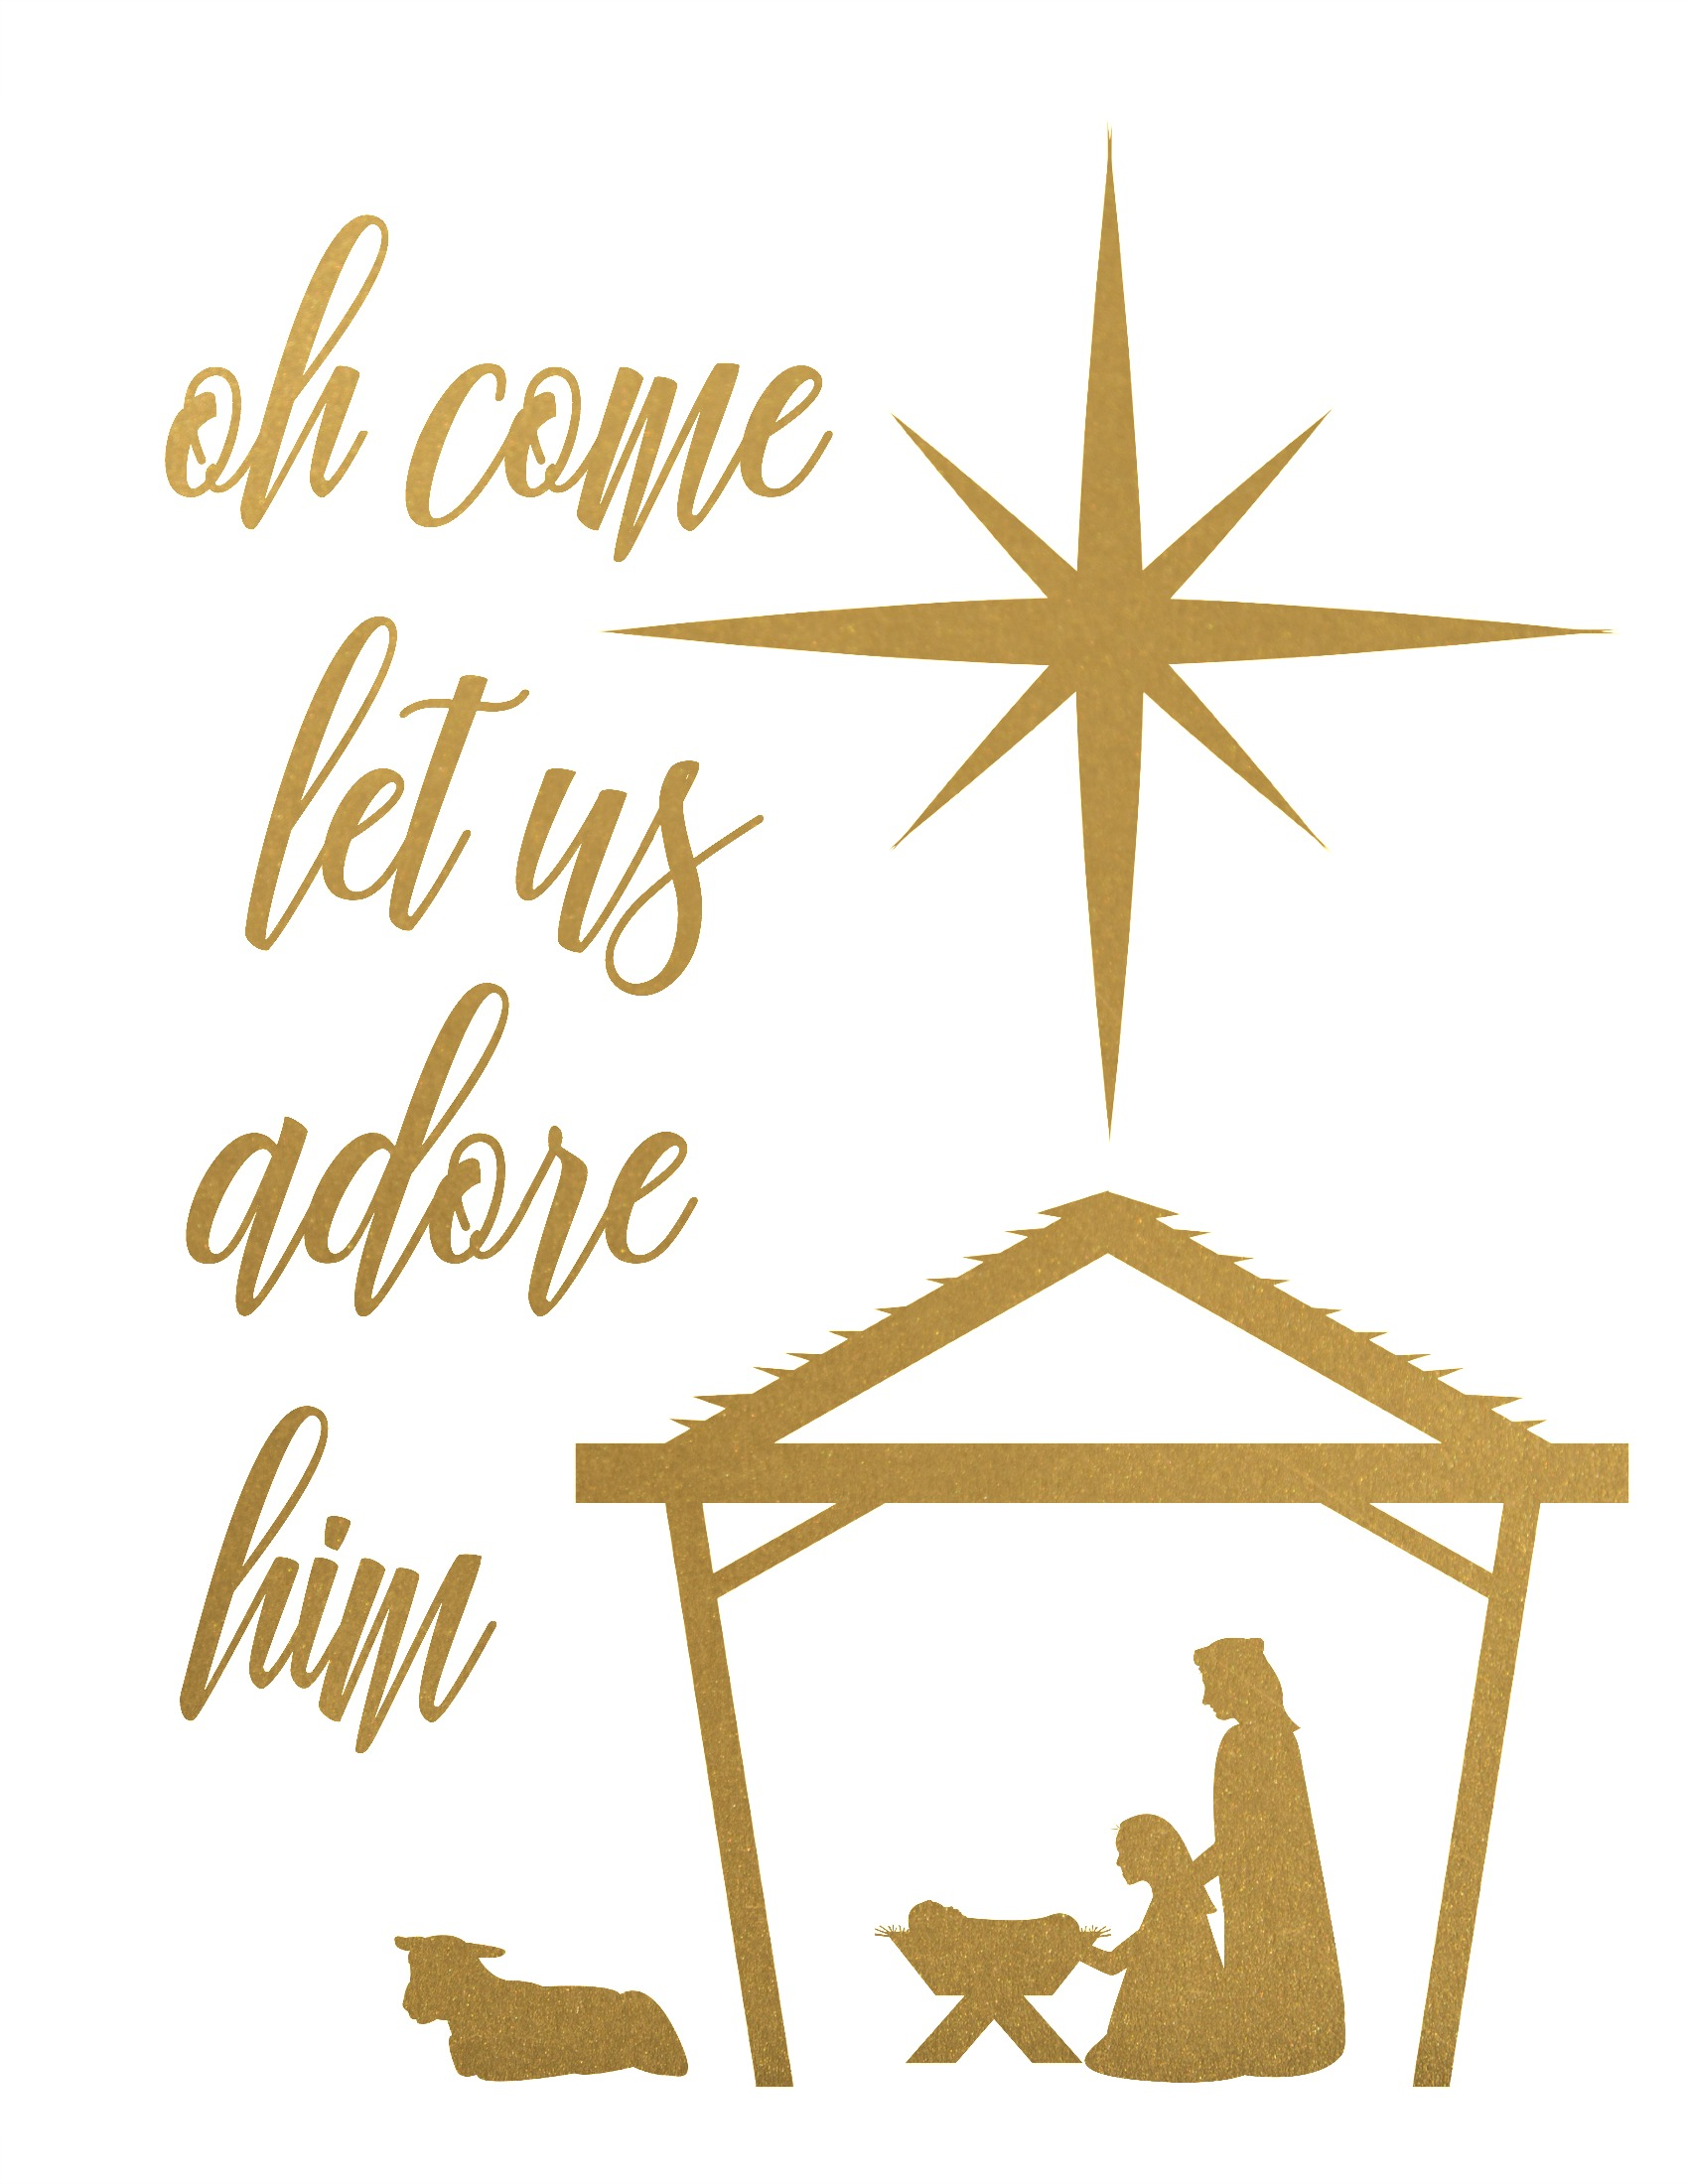 Oh come let us adore him clipart image black and white download Oh Come Let Us Adore Him Free Christmas Nativity Printable (in 4 ... image black and white download